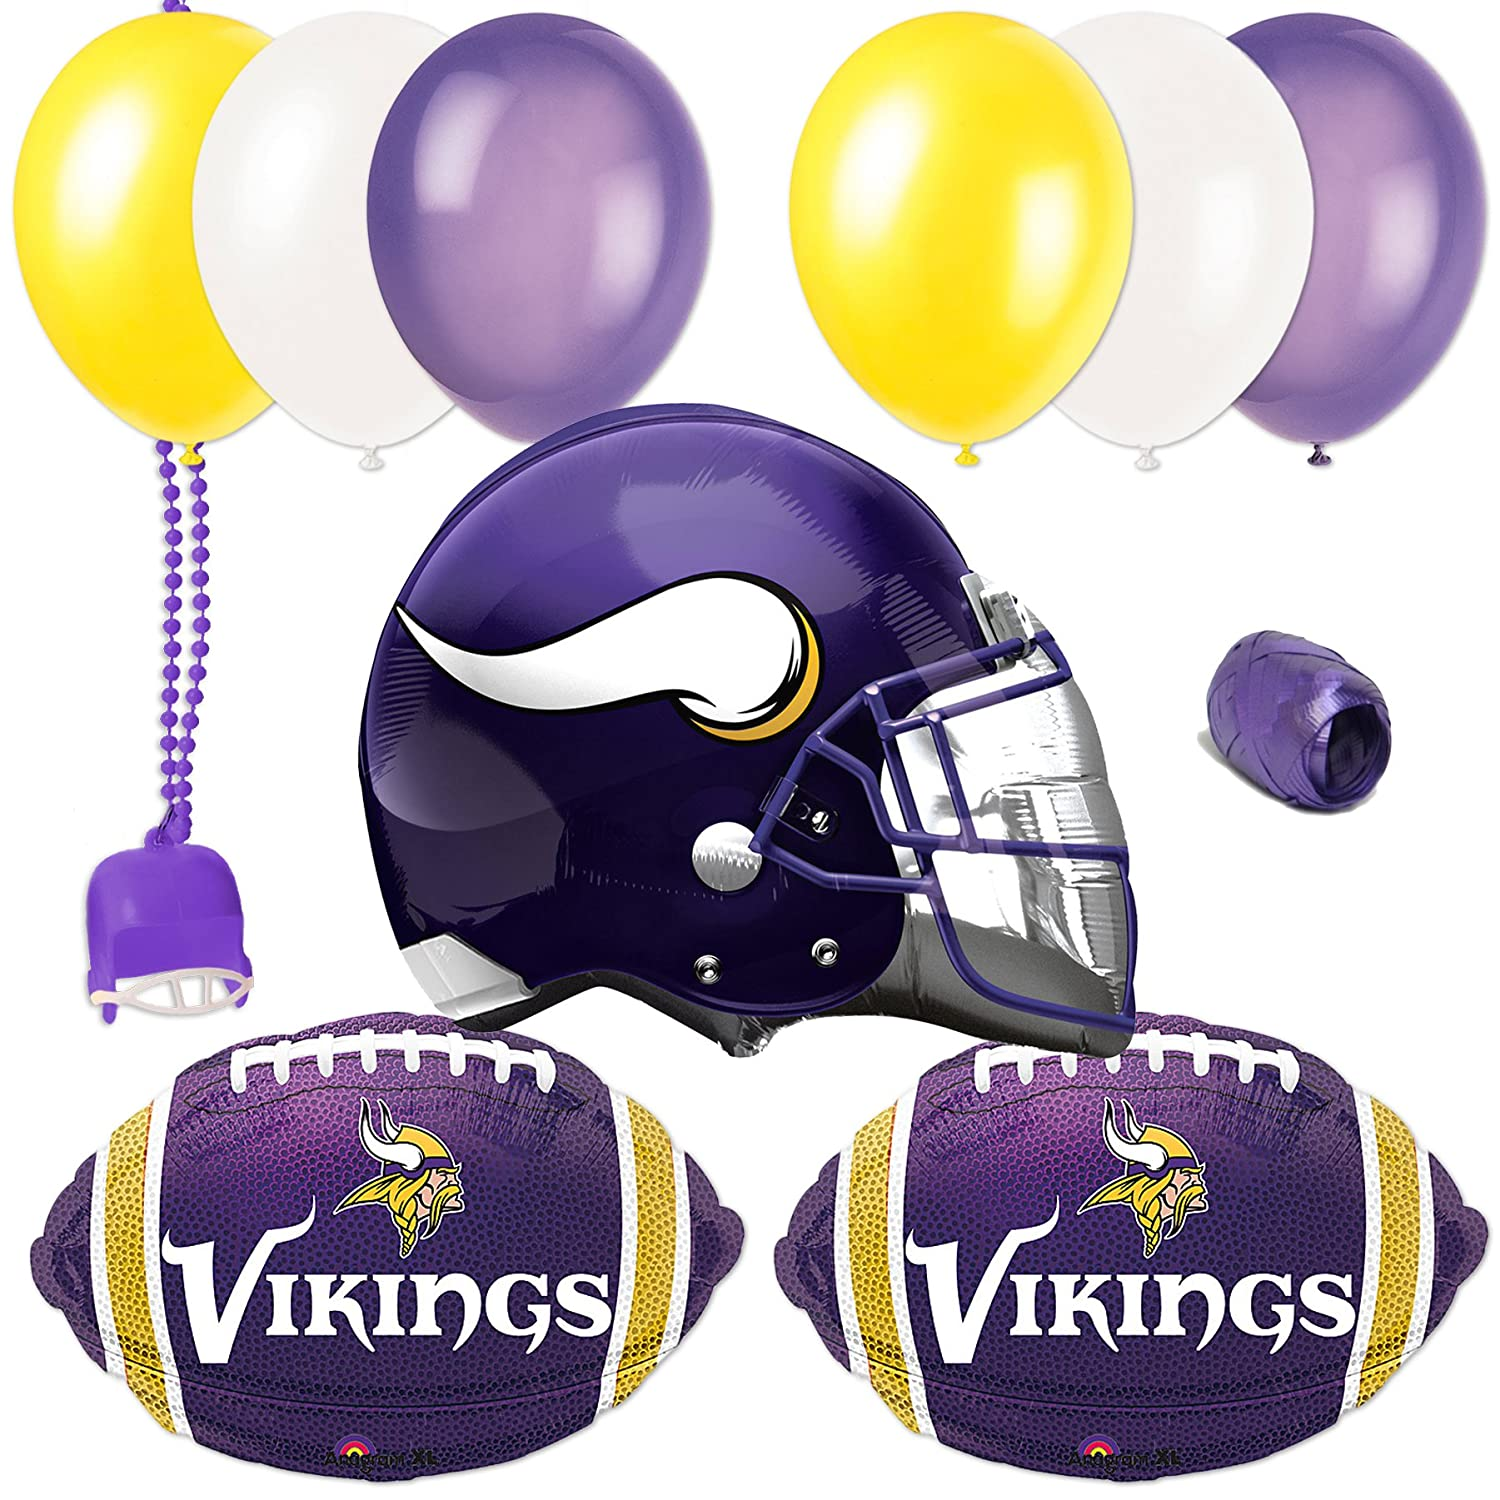 0af048fae Amazon.com: Minnesota Vikings Helmet Football Party 11pc Balloon Pack,  Purple Yellow White: Health & Personal Care